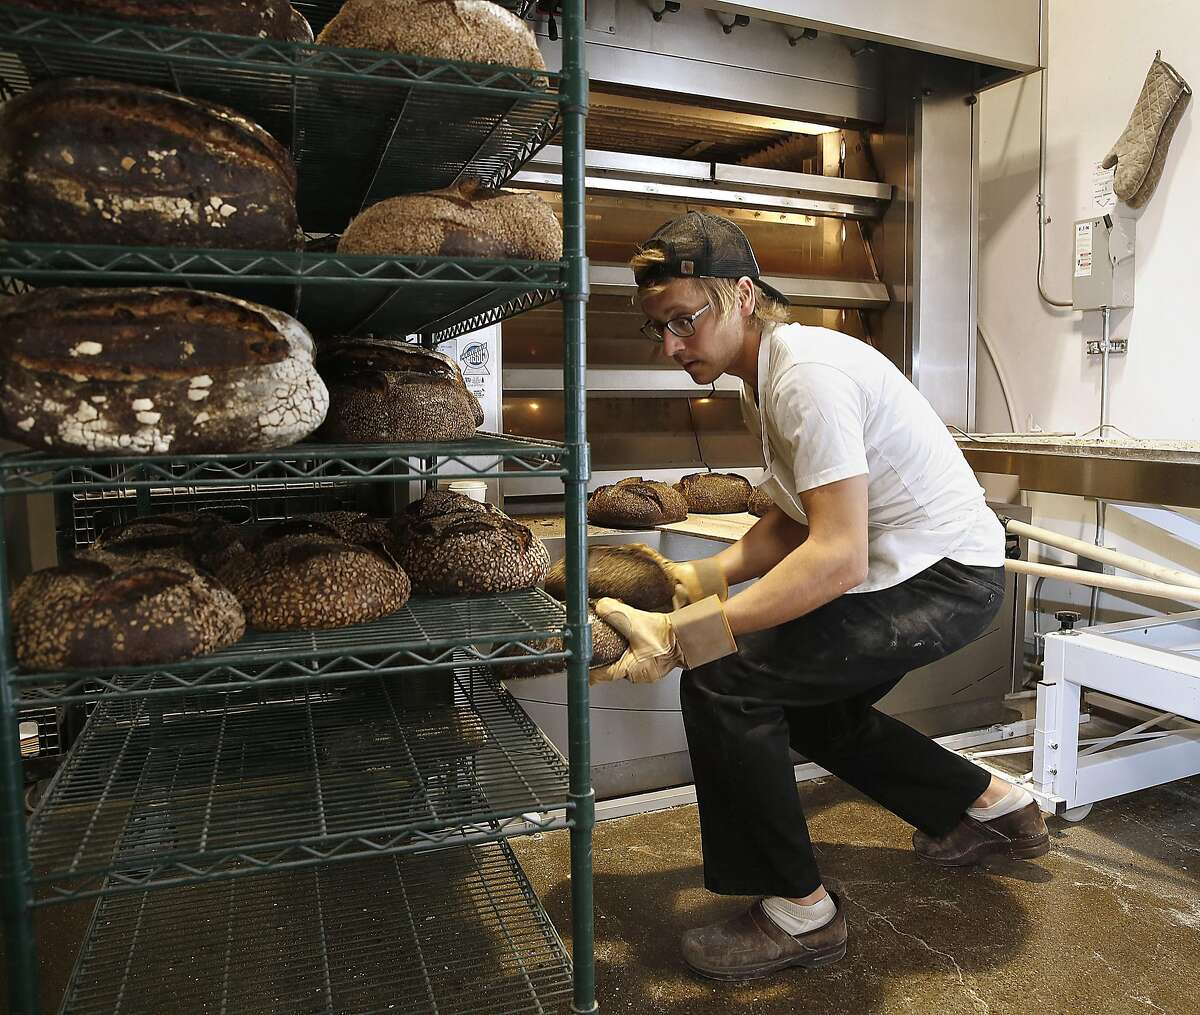 Pain baker Chase Agee removes baked bread from the oven to cool on racks in San Mateo, California on tuesday, april 19, 2016.